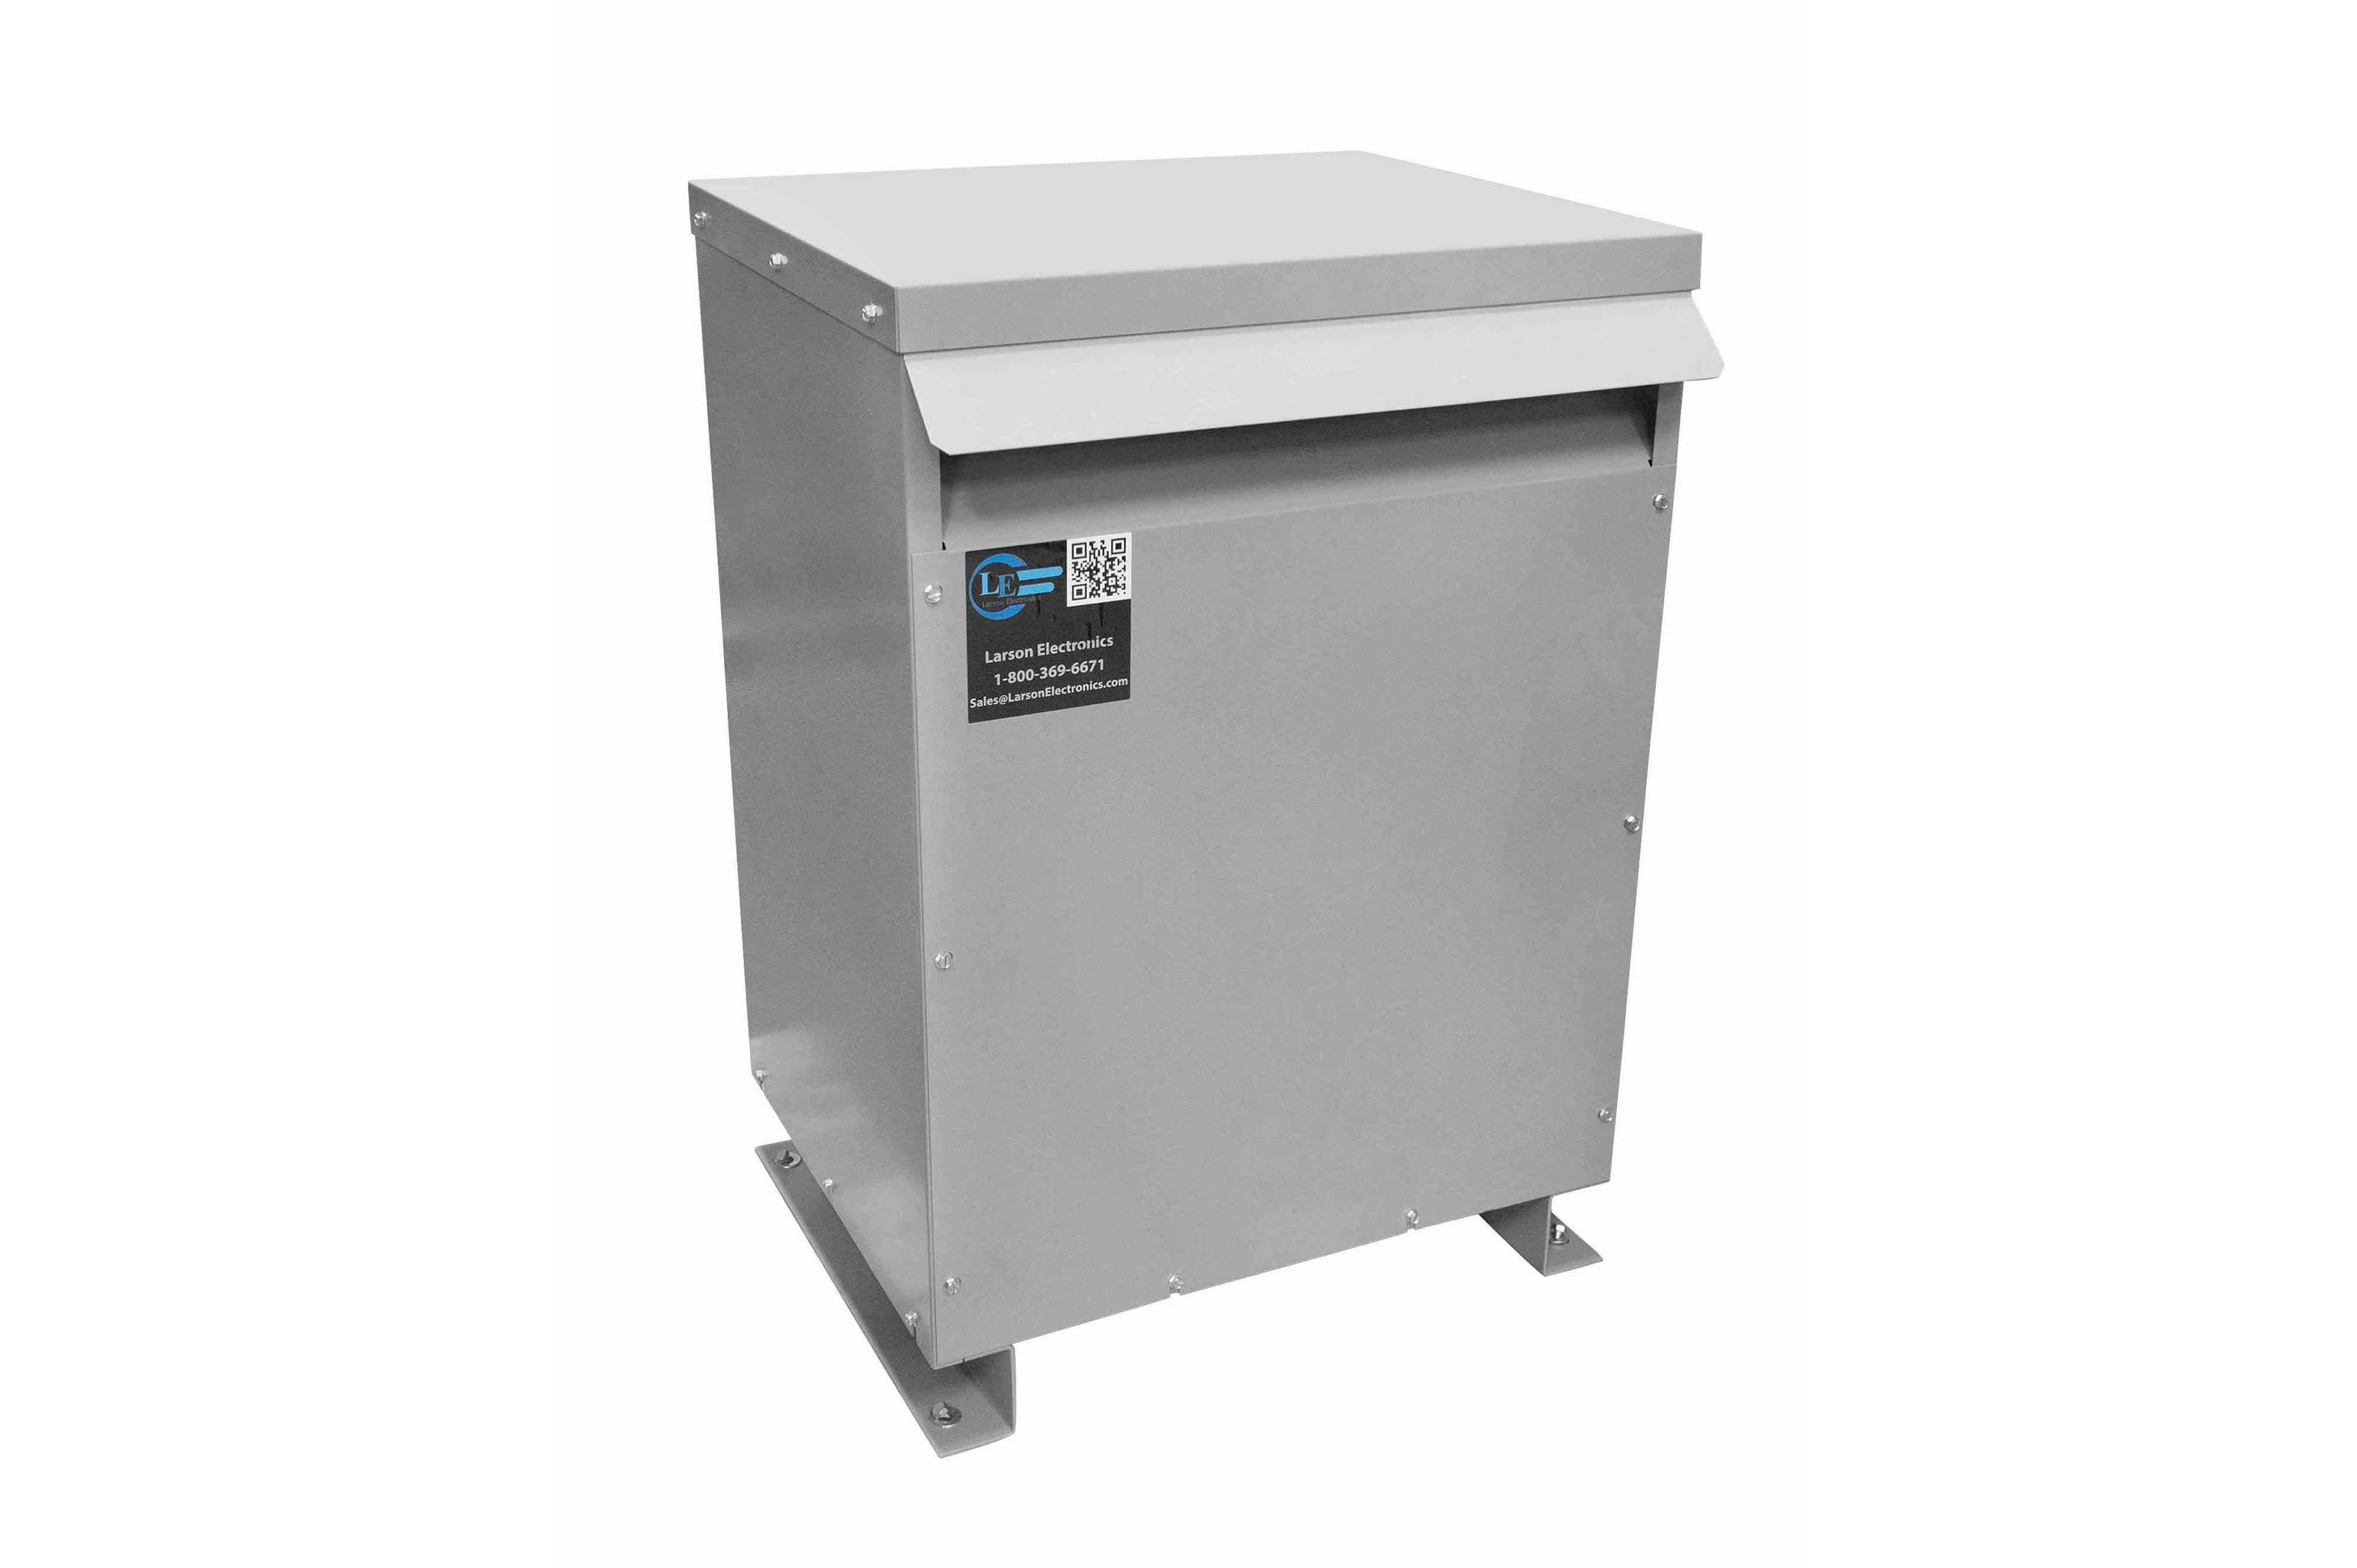 75 kVA 3PH Isolation Transformer, 480V Wye Primary, 575V Delta Secondary, N3R, Ventilated, 60 Hz